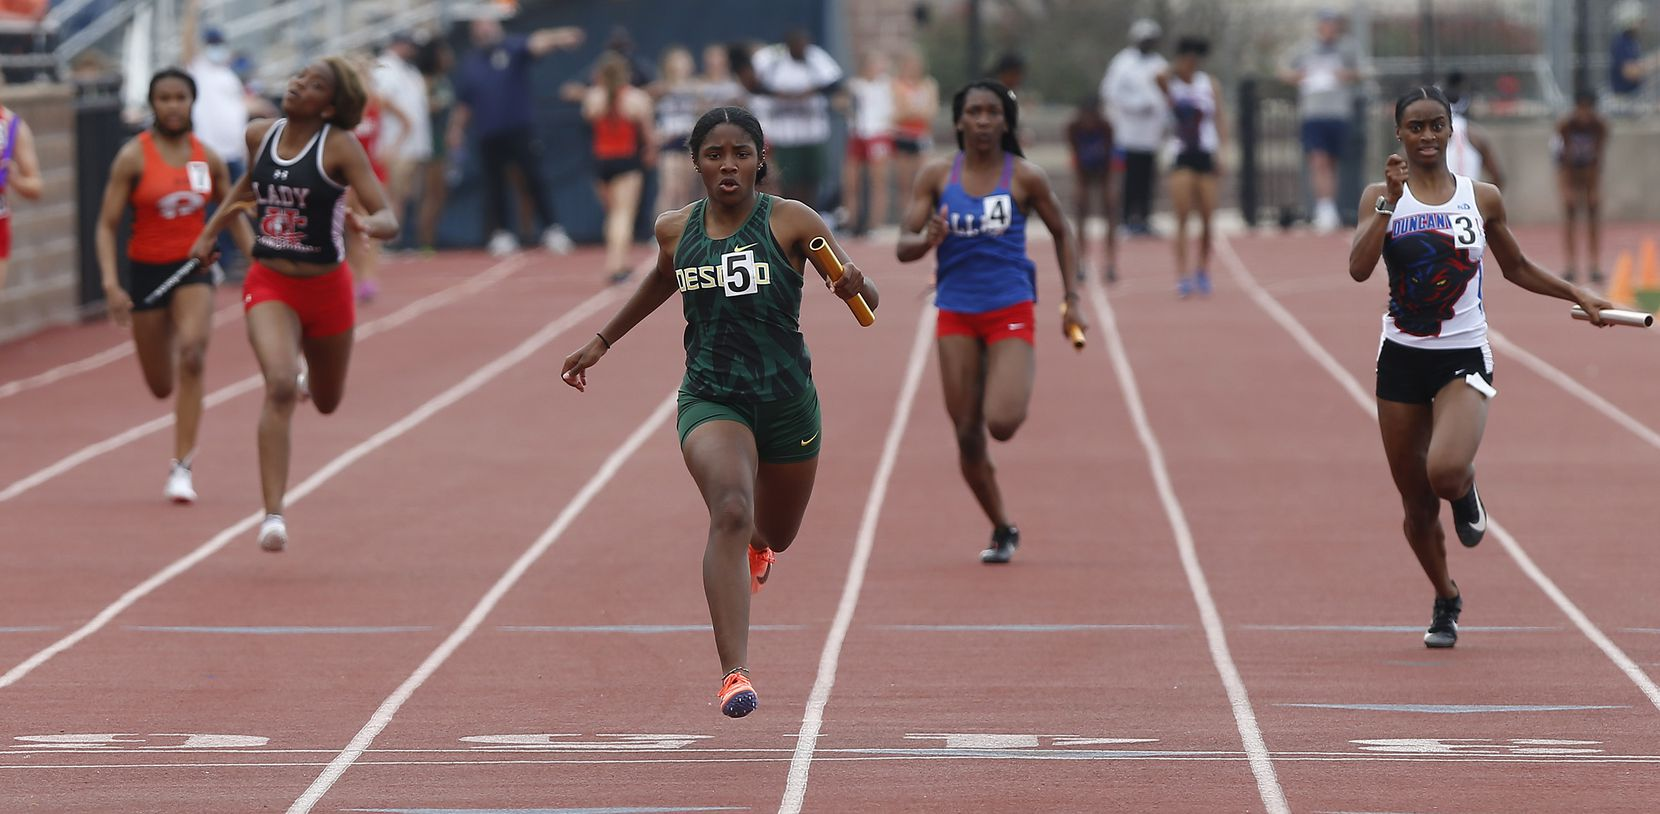 Mia Abraham (center) crosses the finish line first for DeSotto High School in the girls 4x100 at the Jesuit-Sheaner Relays held at Jesuit College Preparatory School in Dallas on Saturday, March 27, 2021.  (Stewart F. House/Special Contributor)